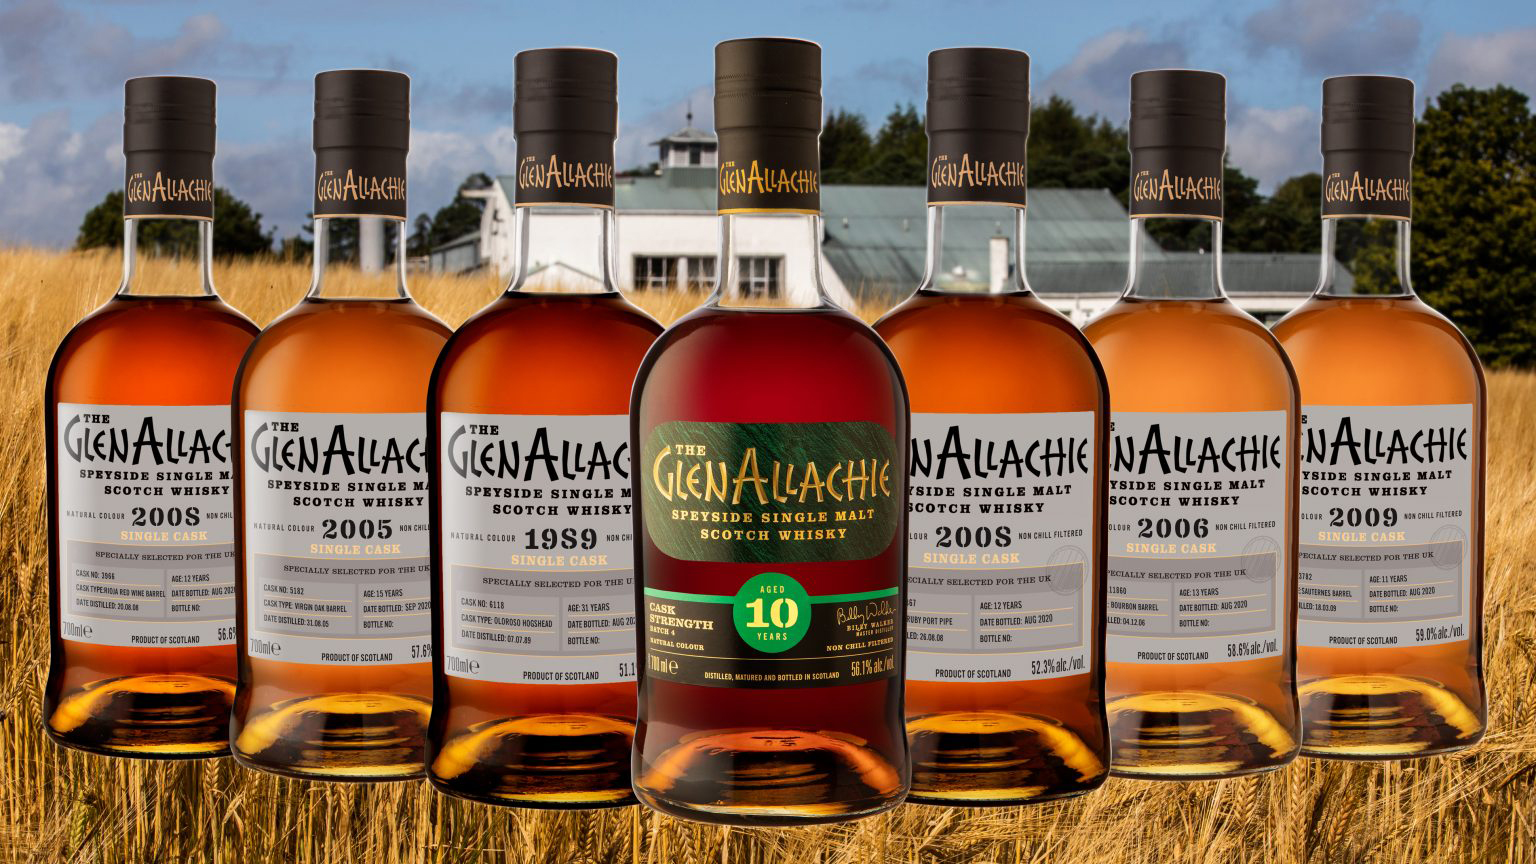 GlenAllachie Launches 10 Year Old Cask Strength Batch 4 And Six Single Cask Whiskies